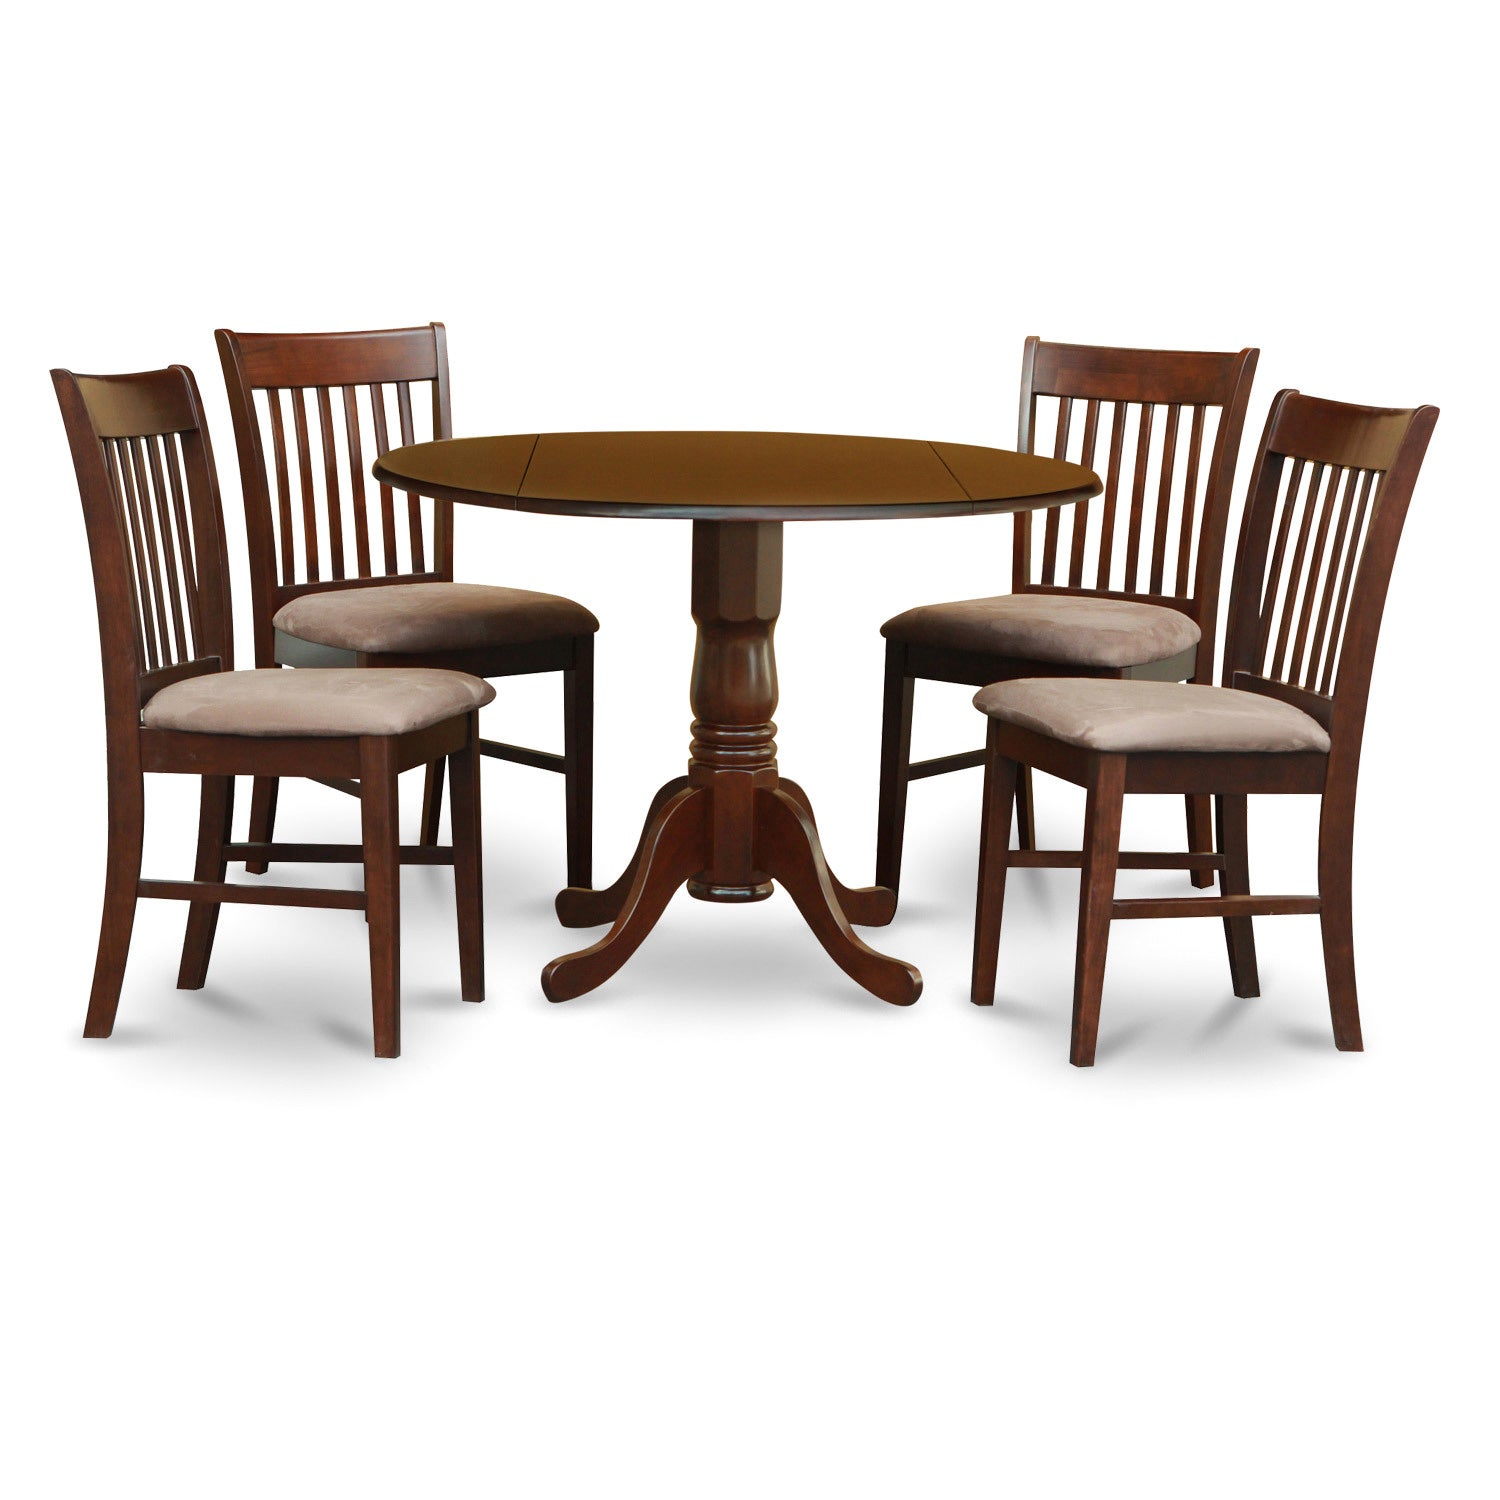 Mahogany Round Table And Dinette Chairs 5 Piece Dining Set